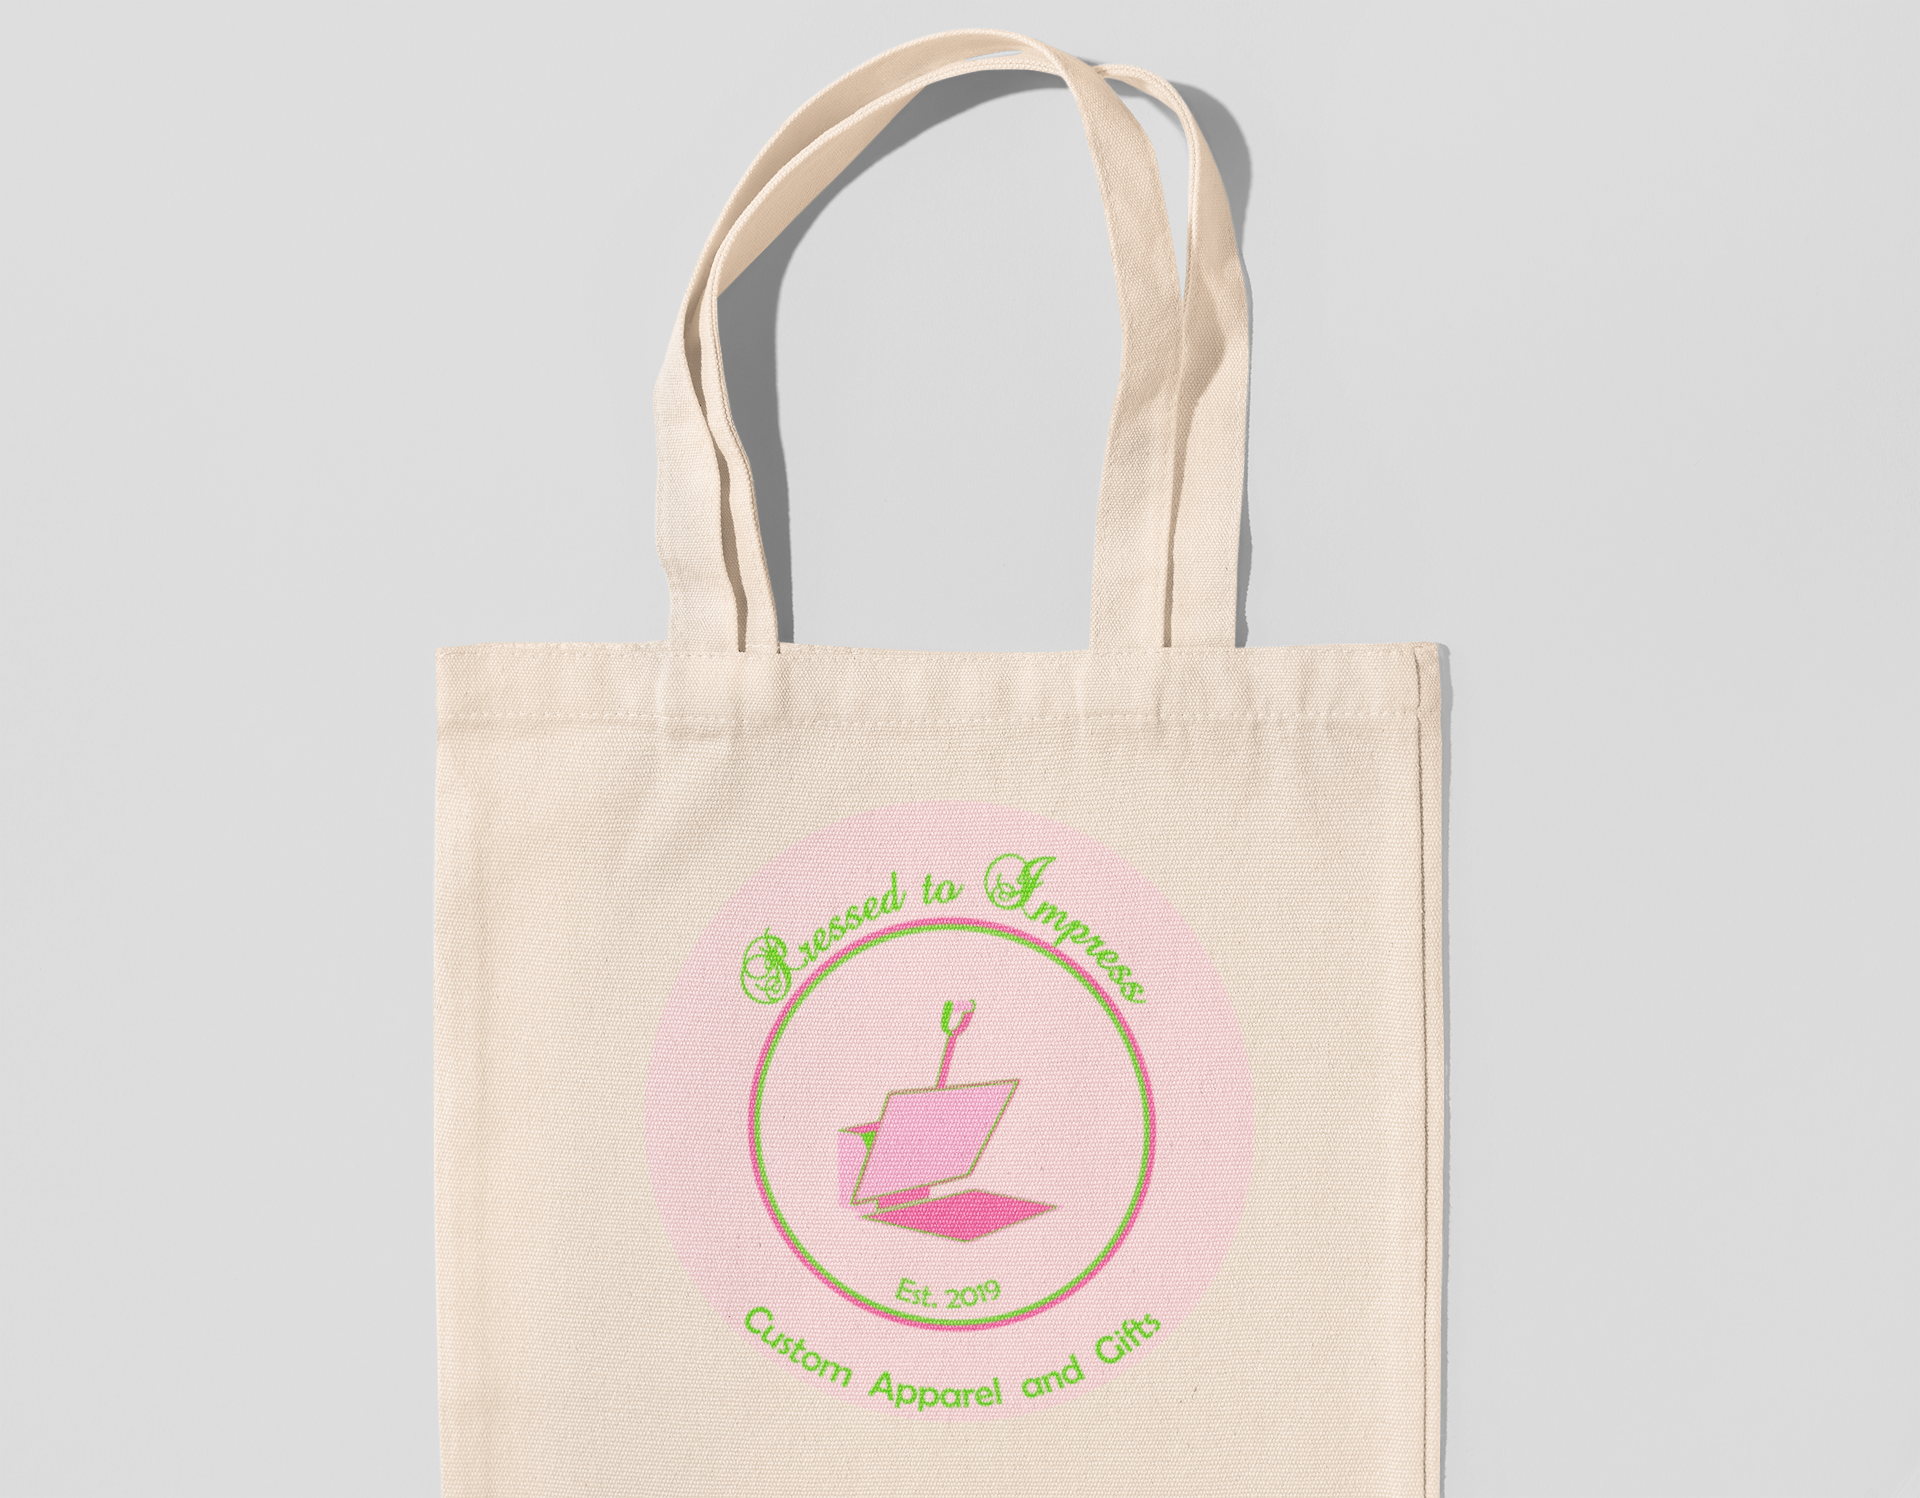 Bags ( Cosmetic, Personal, & Tote)